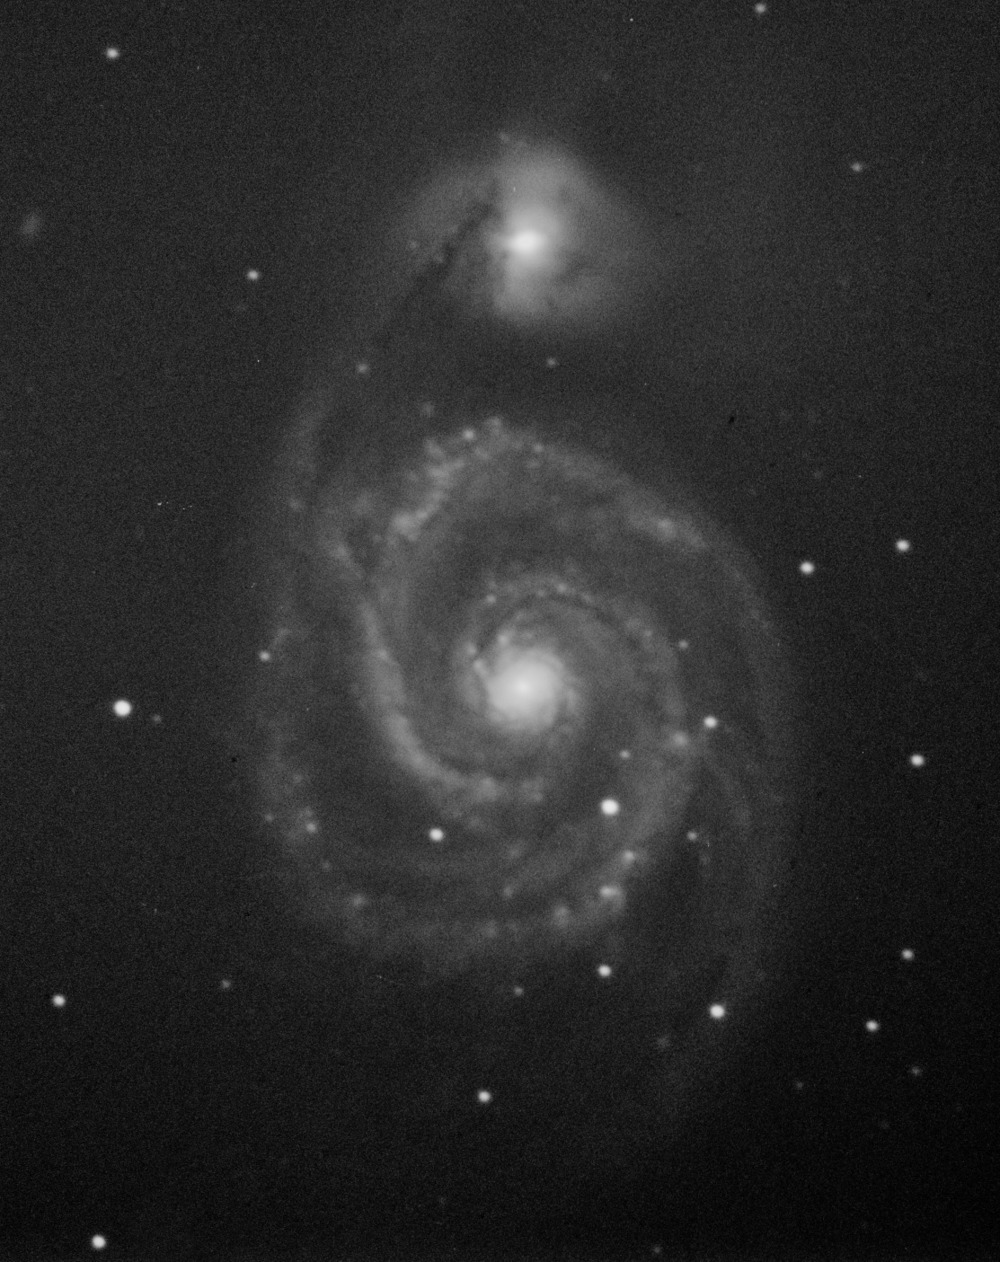 First light image from the new observatory. This image shows the galaxy pair M51 also known as the Whirlpool Galaxy, named after its conspicuous display of beautiful spiral arms. What is also evident is a smaller companion galaxy seen up top that is in a cosmic ballet with the bigger, more massive partner below.  Image credits: Sameer Rashid Shami Telescope and Camera: Celestron 8SE, SBIG STF8300 monochrome CCD Autoguider: SBIG STI monochrome CCD